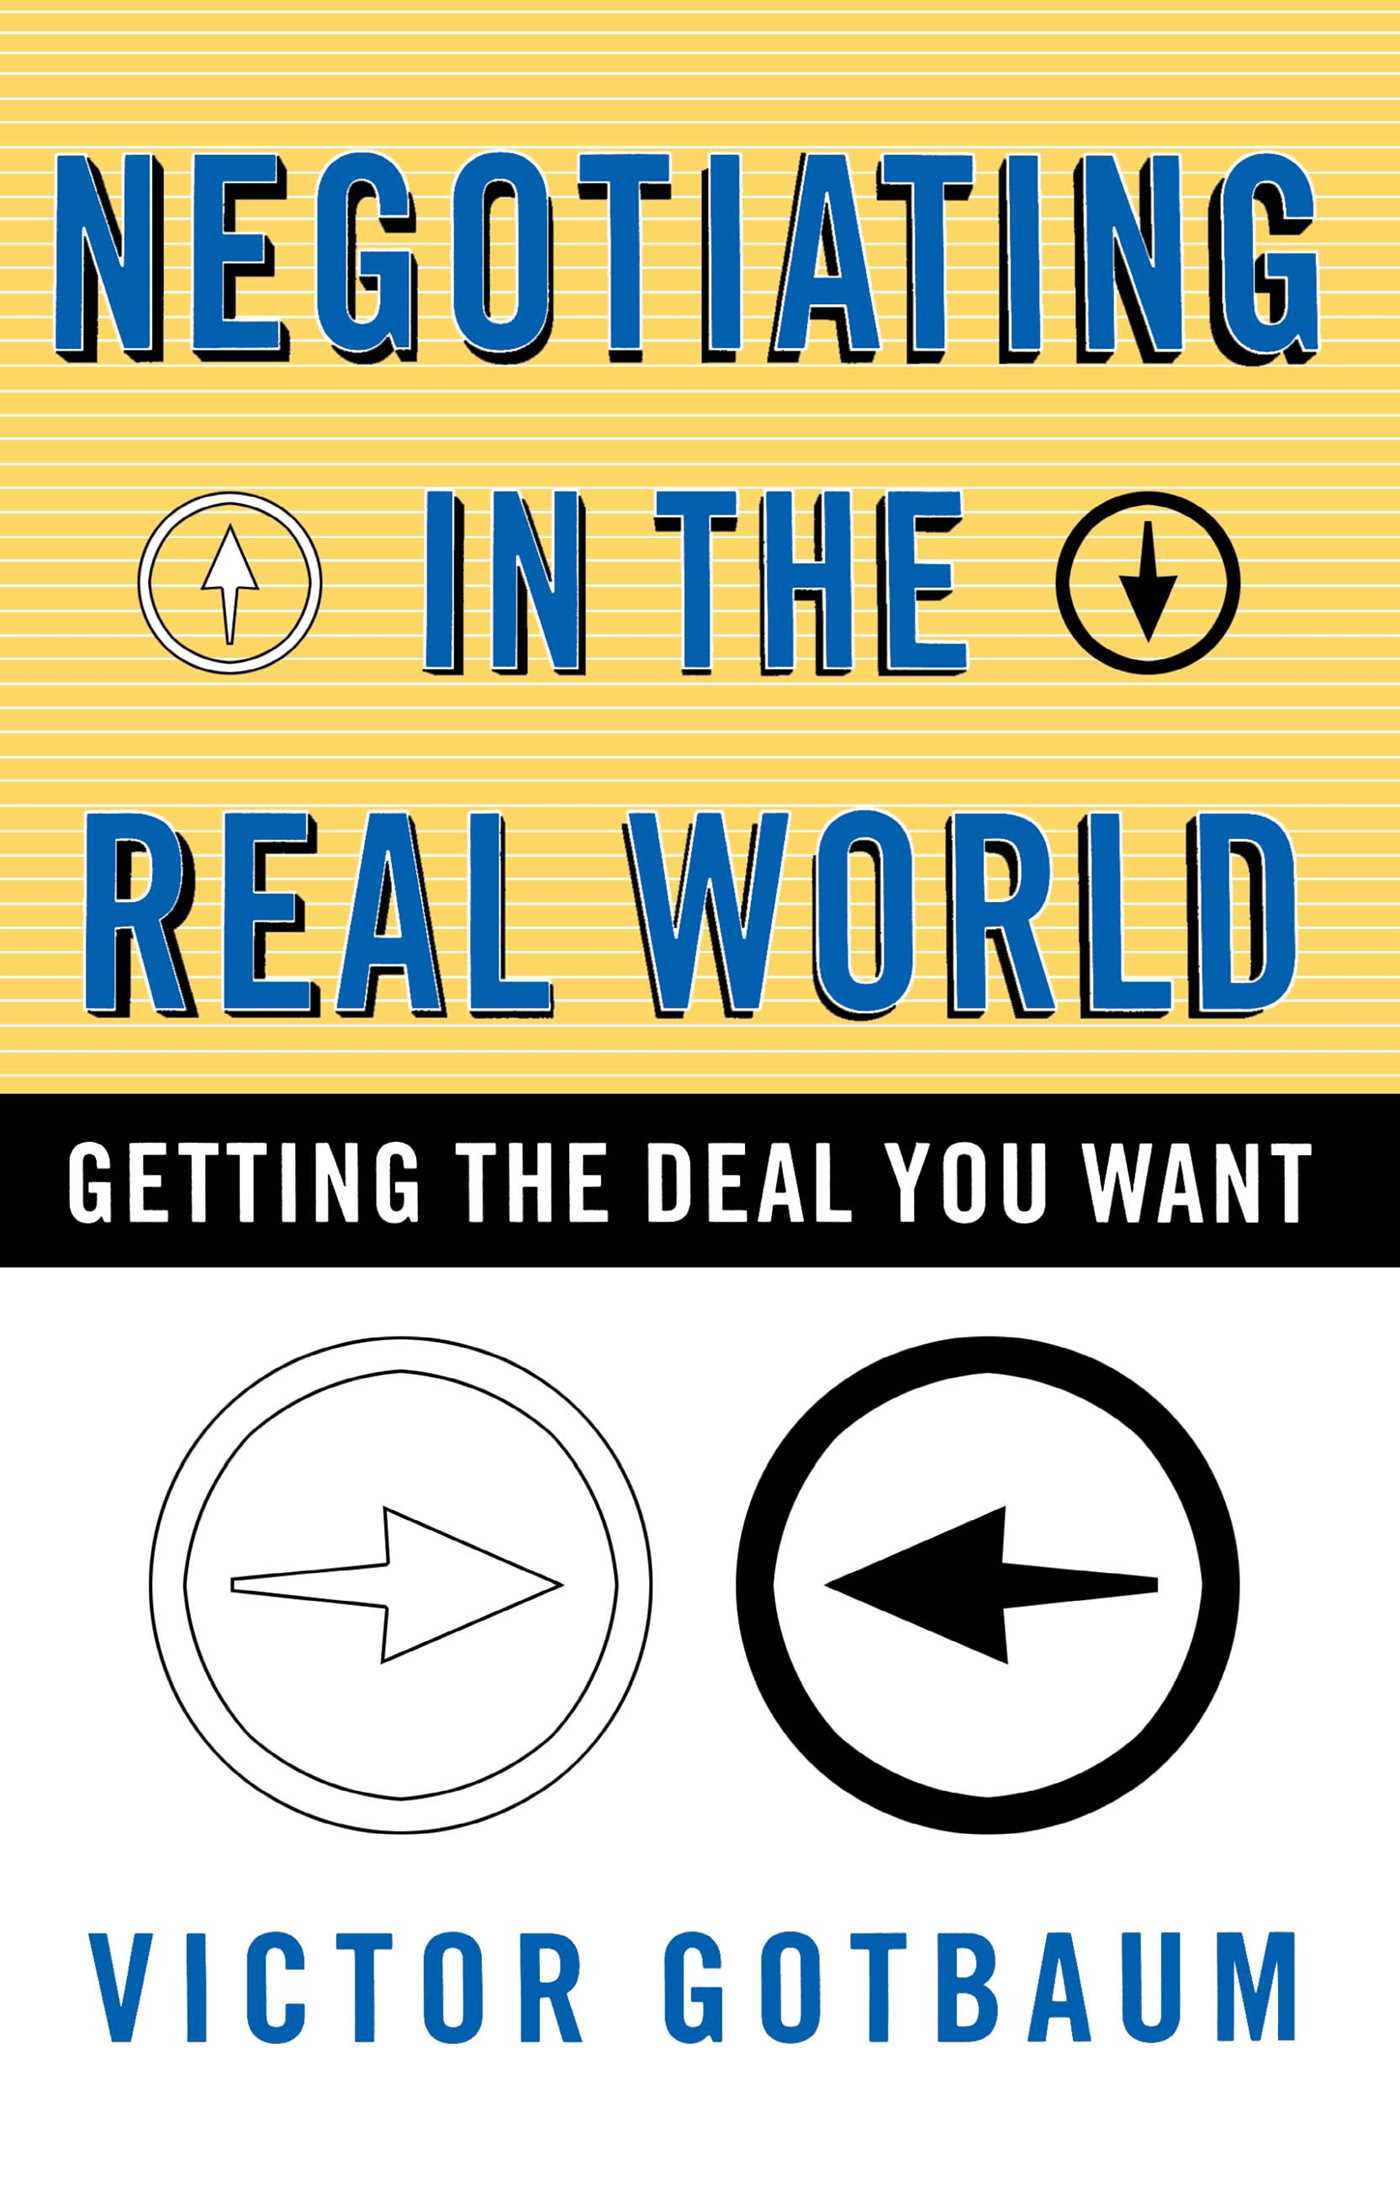 Negotiating-in-the-real-world-9780684865553_hr